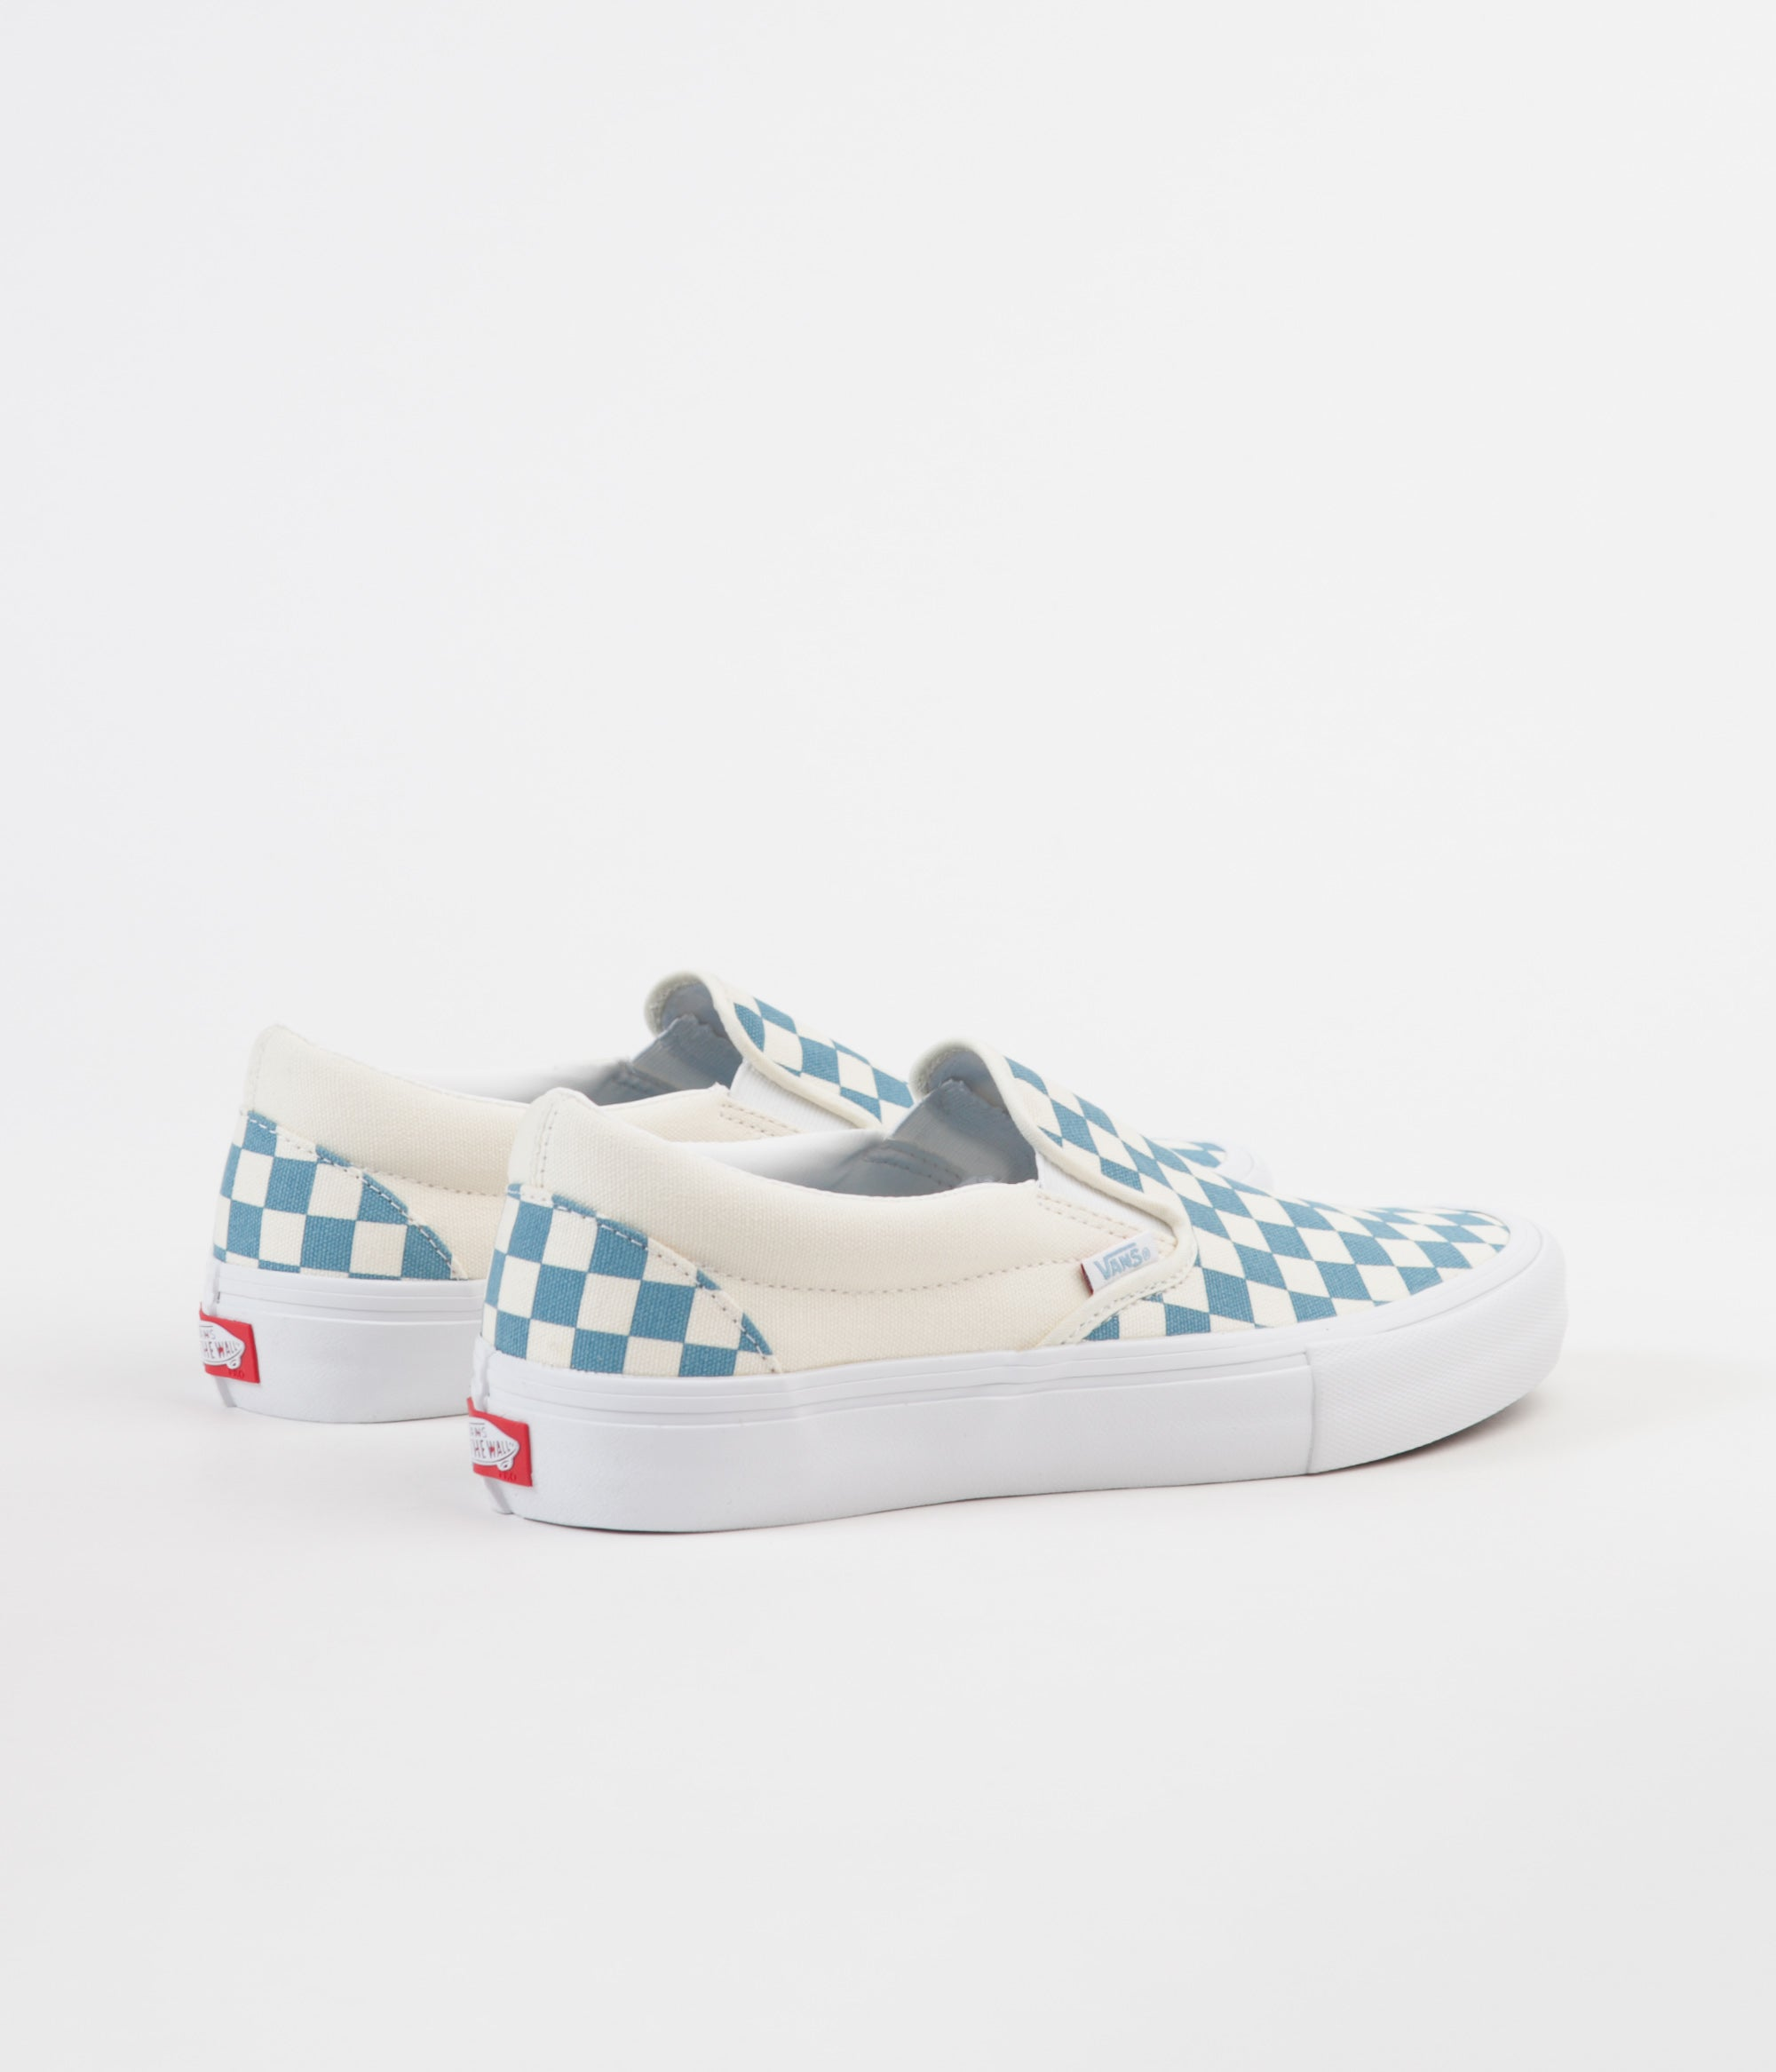 8e694ea39f0 ... Vans Slip On Pro Checkerboard Shoes - Adriatic Blue   White ...